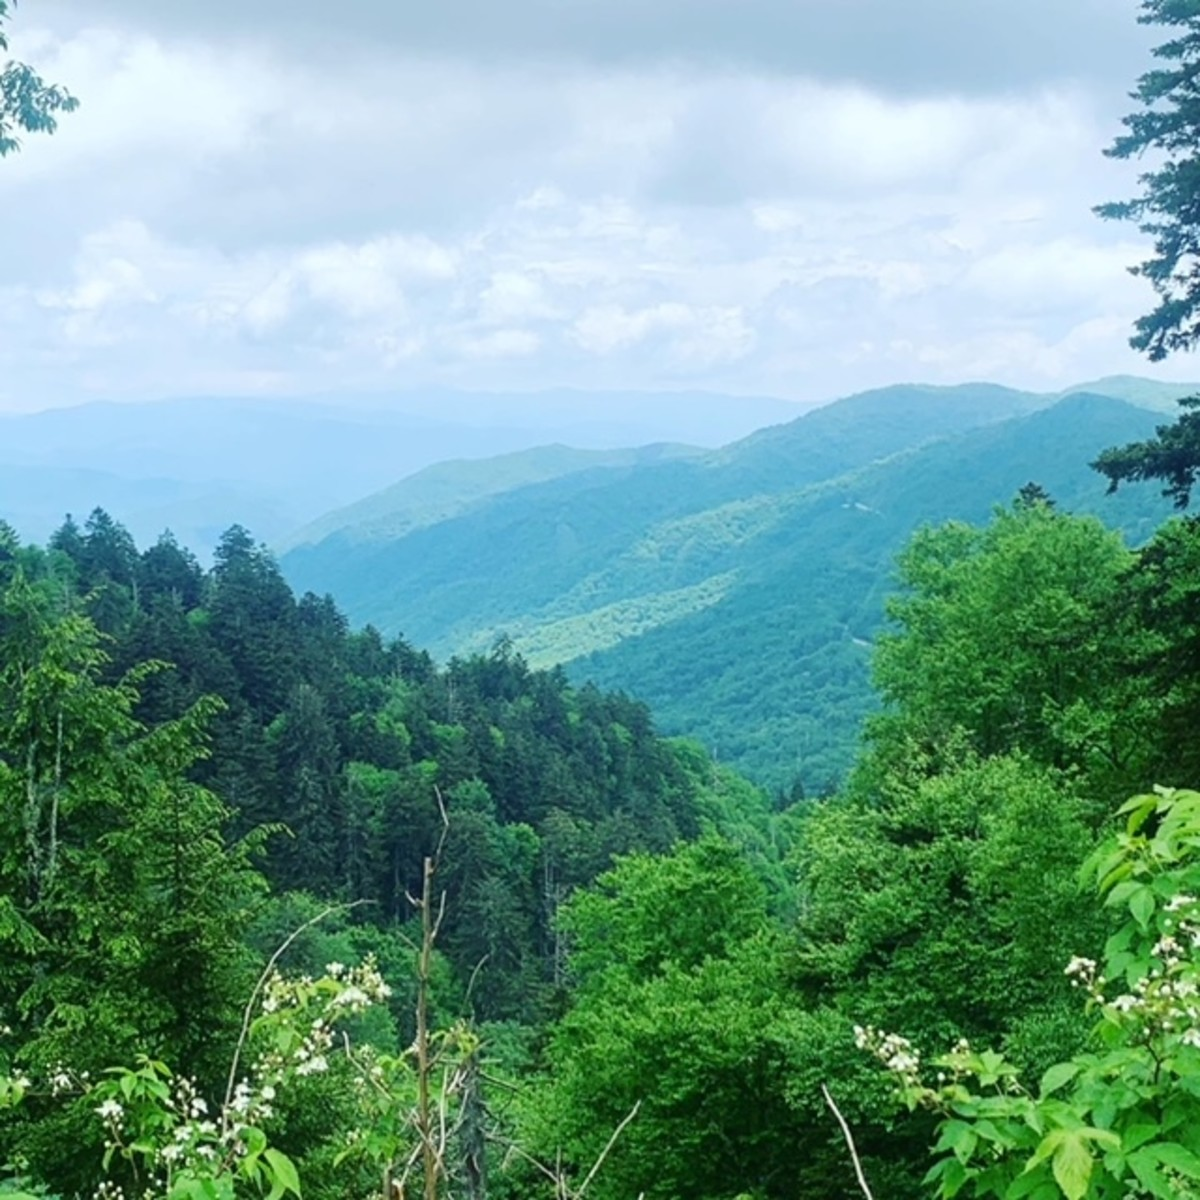 A view from the first overlook going to Clingman's Dome